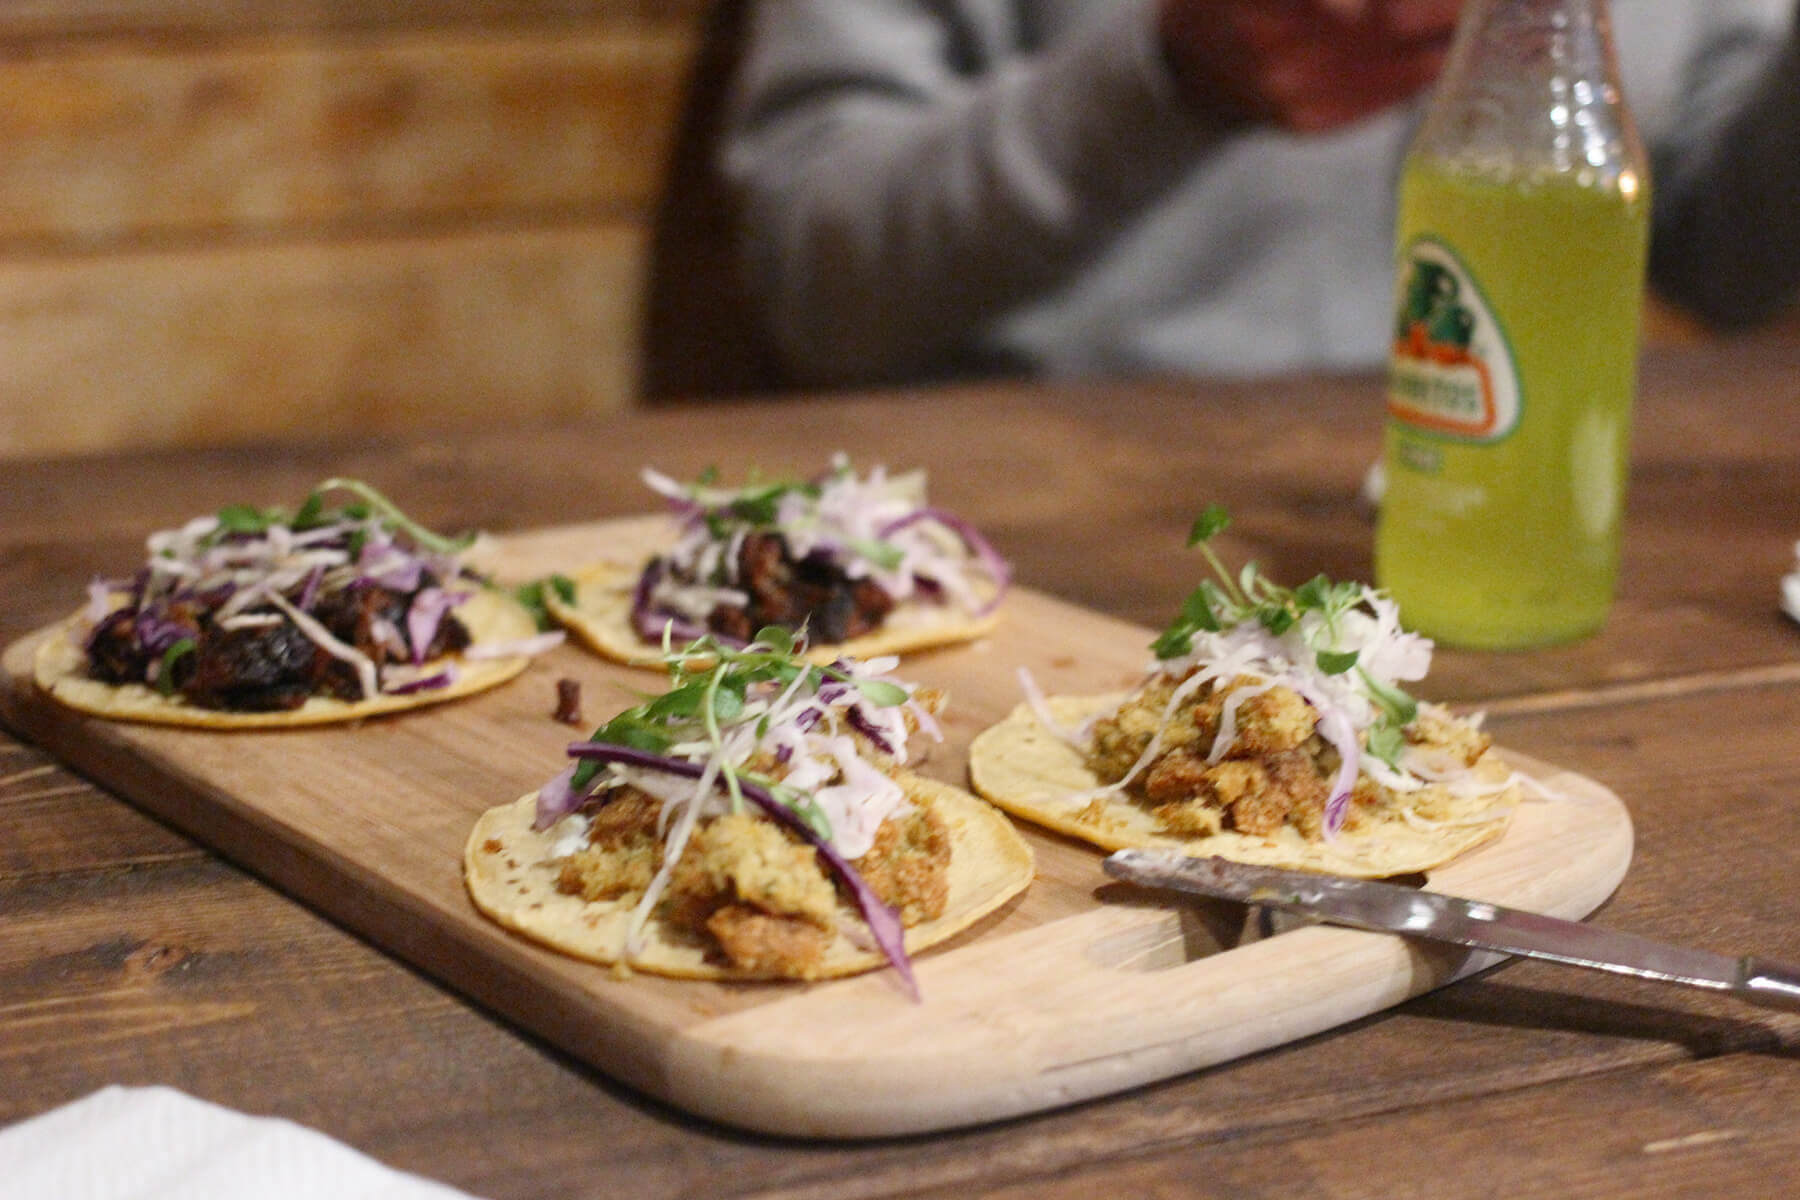 A dining table with tacos